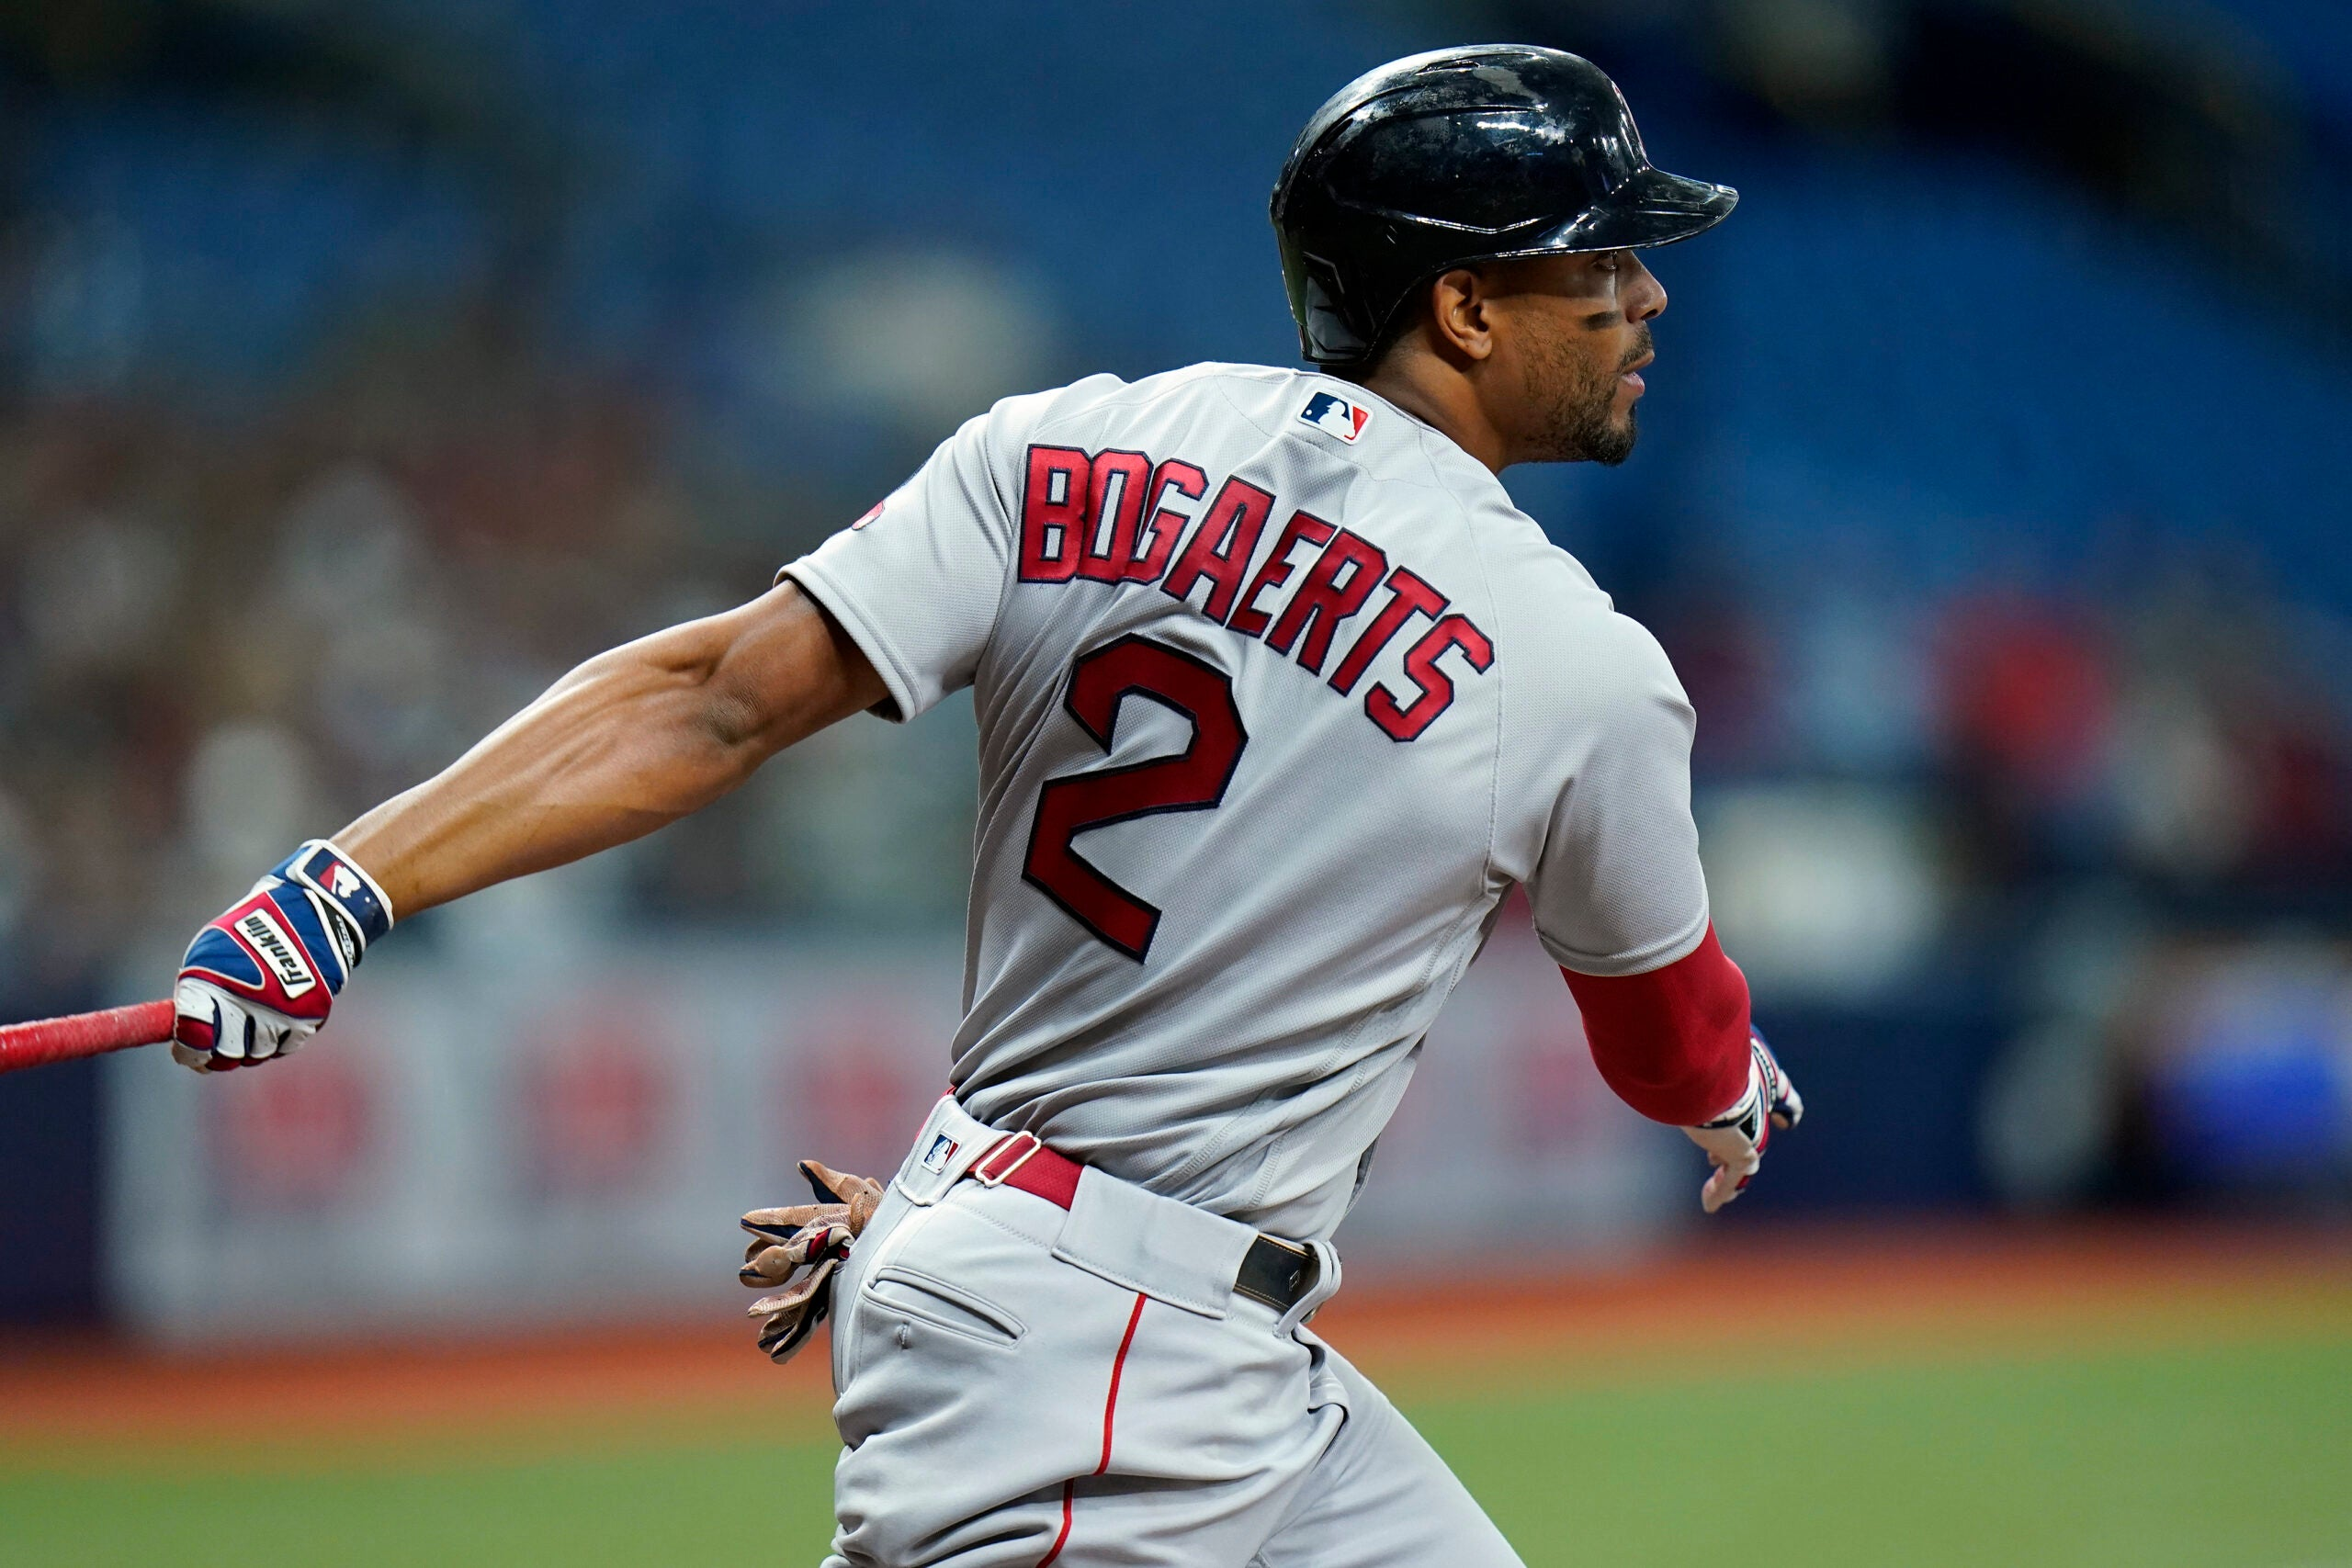 Red Sox star Xander Bogaerts tests positive for COVID-19 1